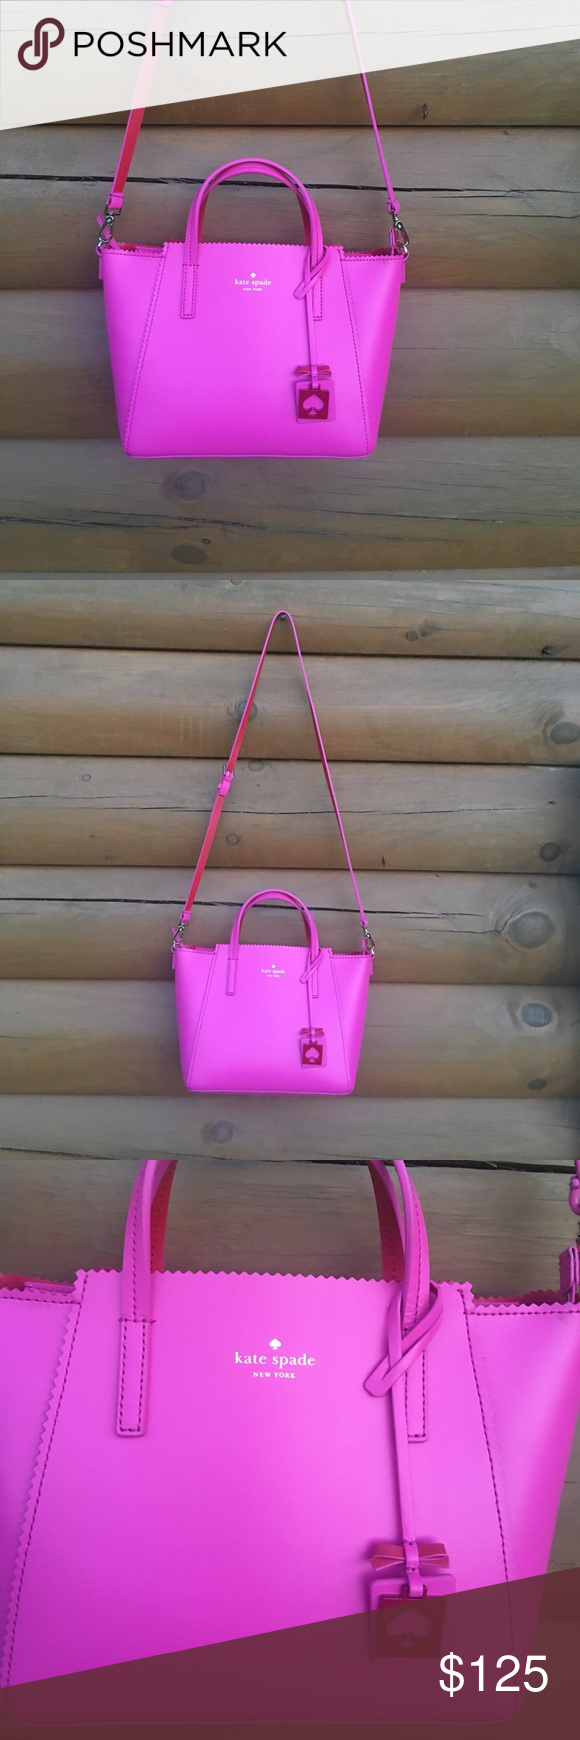 Kate spade purse Hot pink with red interior ivy drive Kate spade with top zip short handles with long crossbody one tiny spot as shown literally like new beautiful structured leather 8.5 tall 12 accross front 5 inch sides kate spade Bags Crossbody Bags